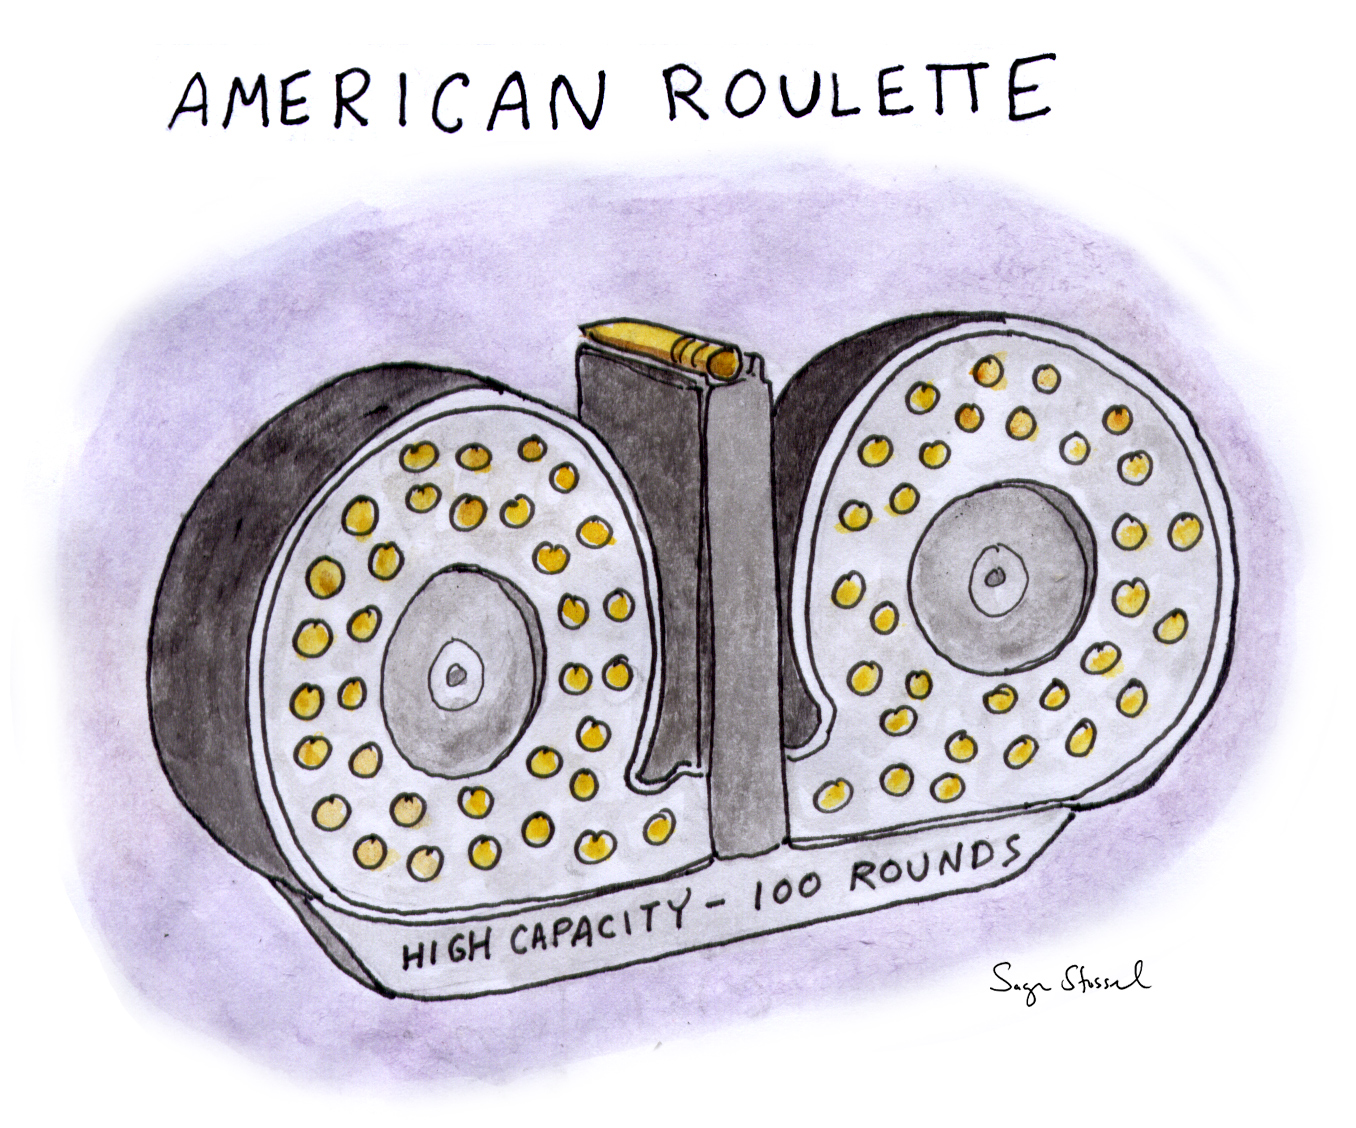 american guns, nra, high-capacity magazines, ak-47s, assault rifles, gun control, american roulette, second amendment, red flag laws, safety, cartoon, sage stossel